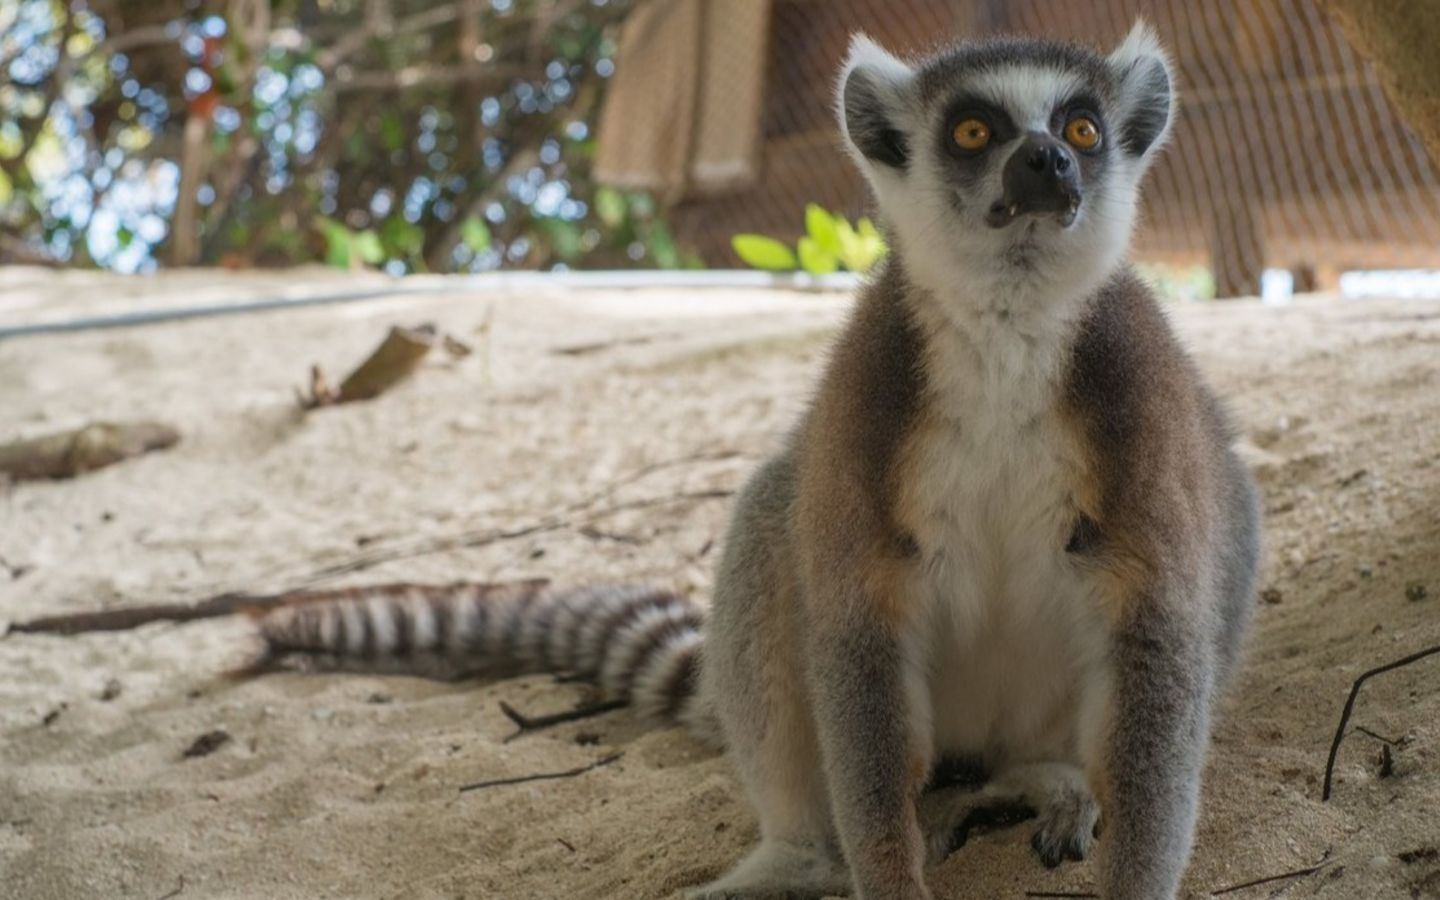 Lemur on Necker Island sitting on the ground